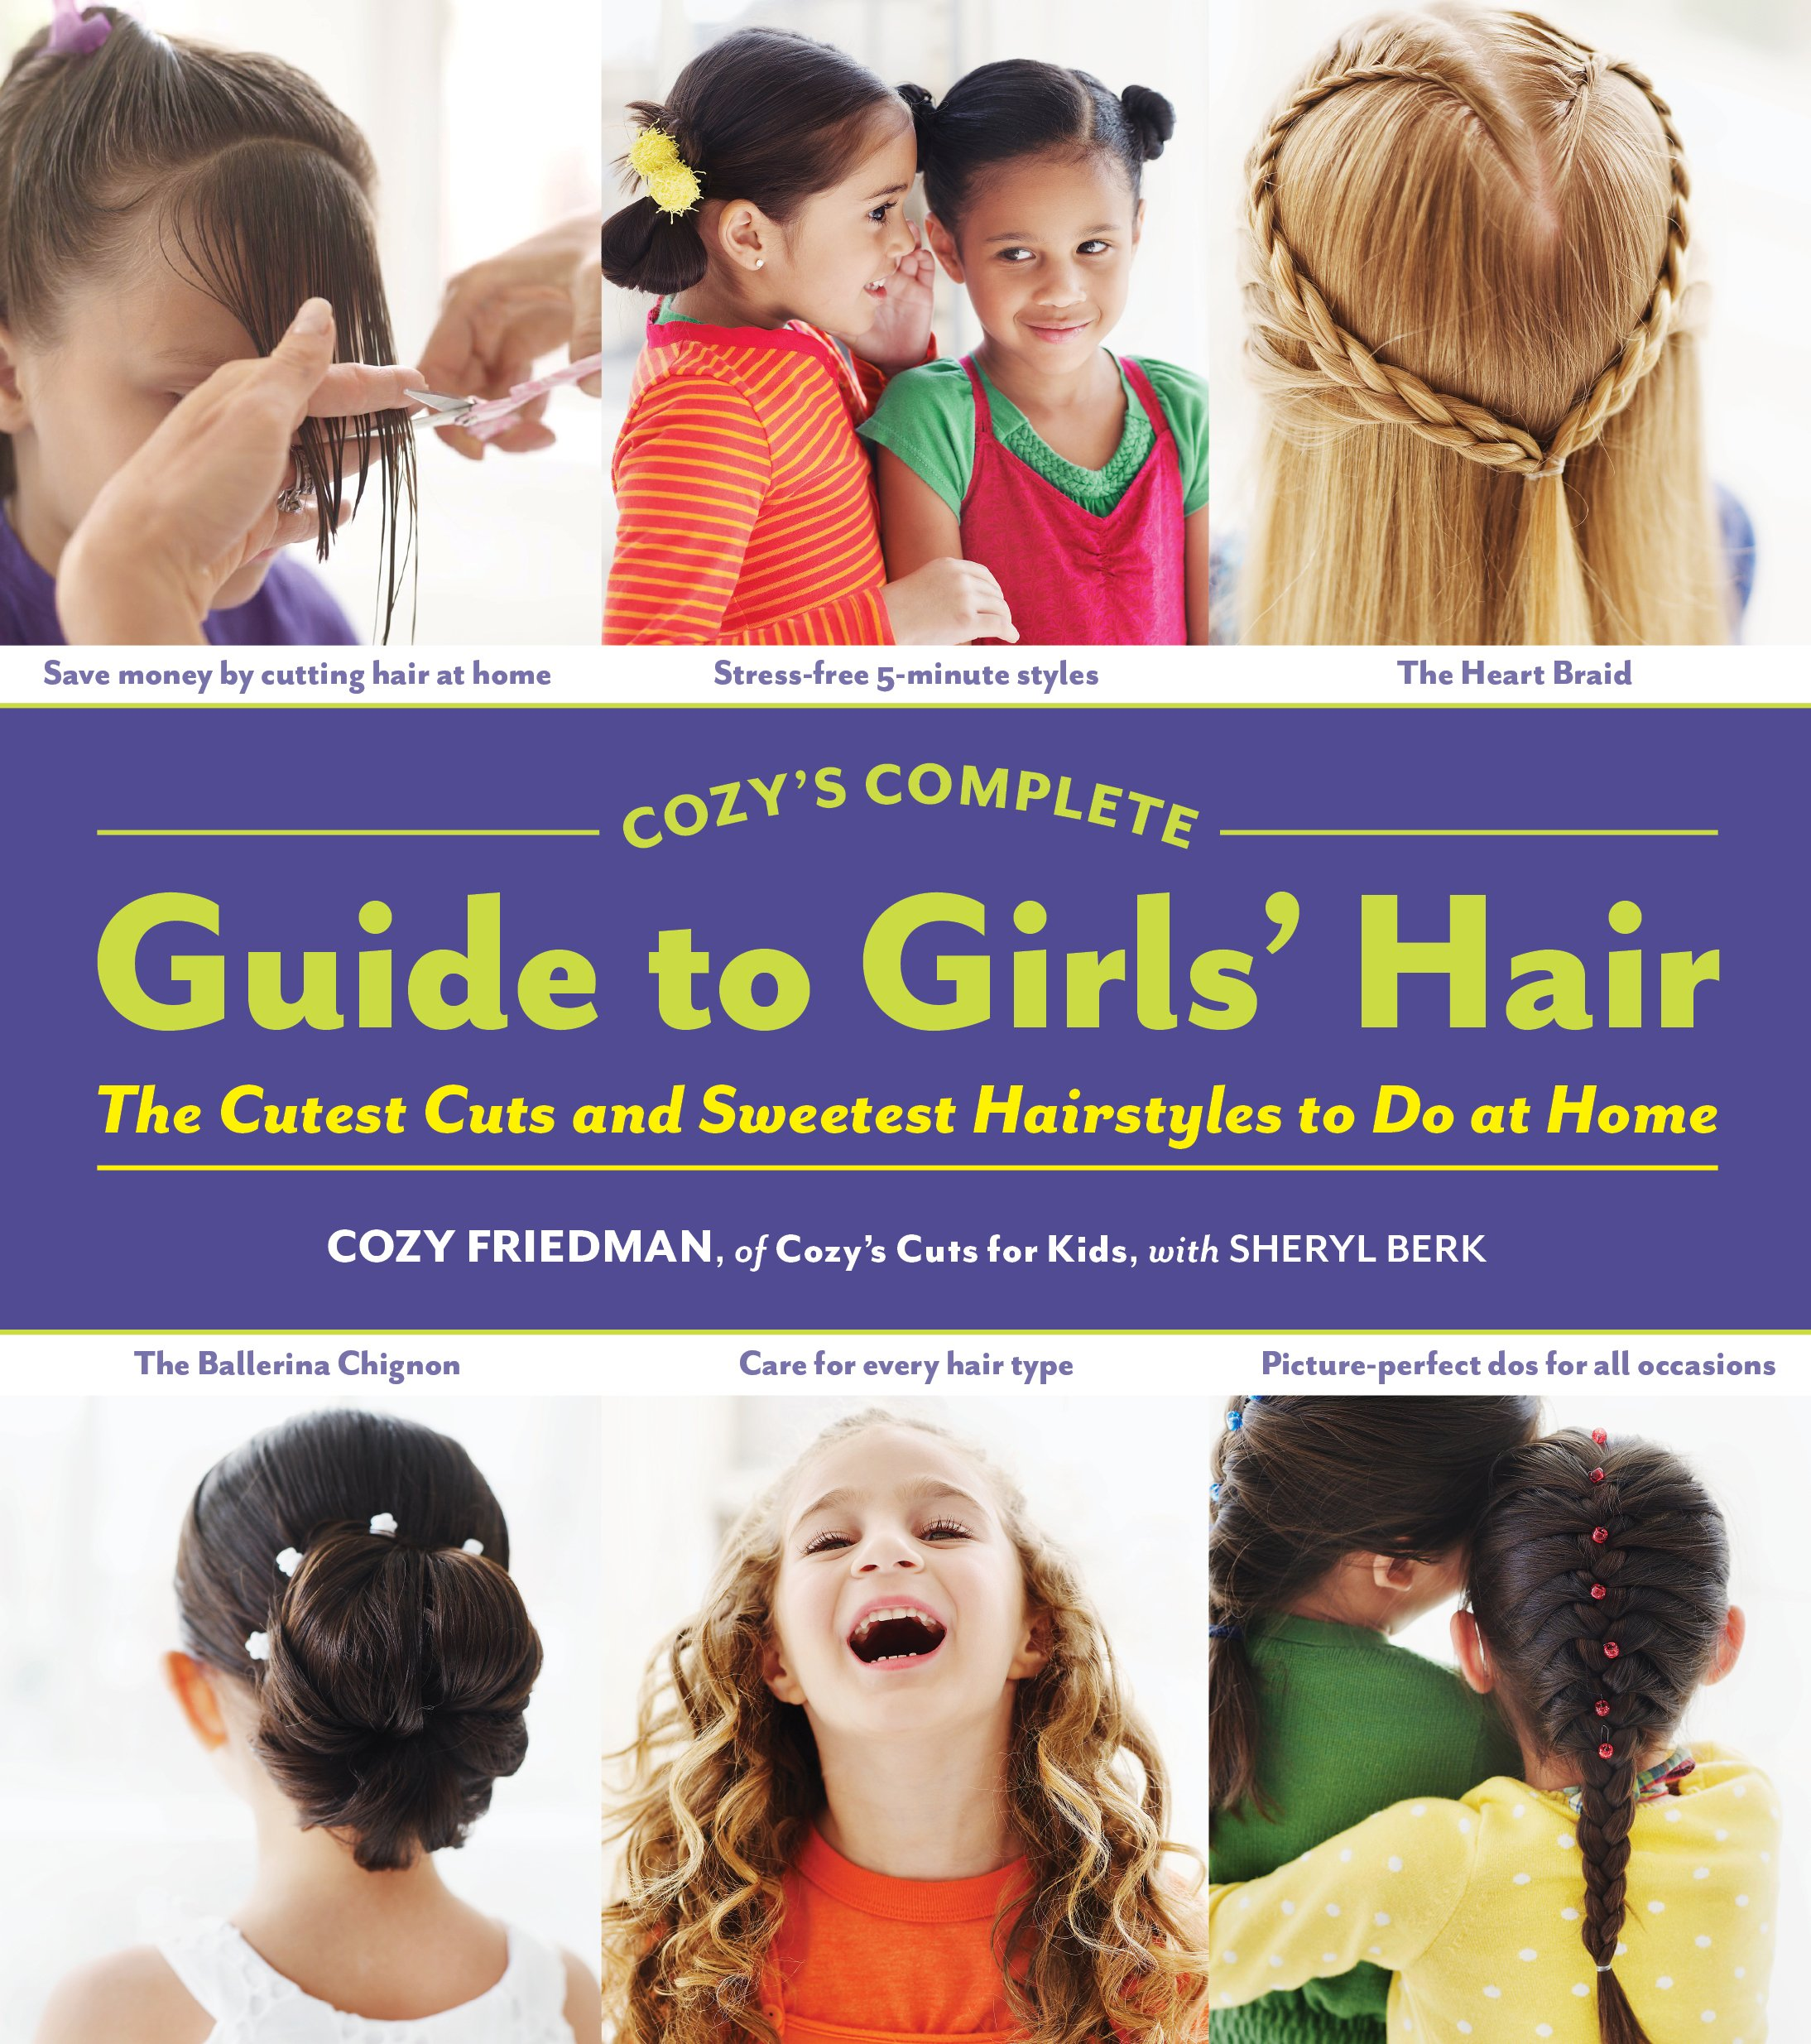 Amazon.com: Cozy's Complete Guide to Girls' Hair (9781579654221): Cozy  Friedman, Sheryl Berk: Books